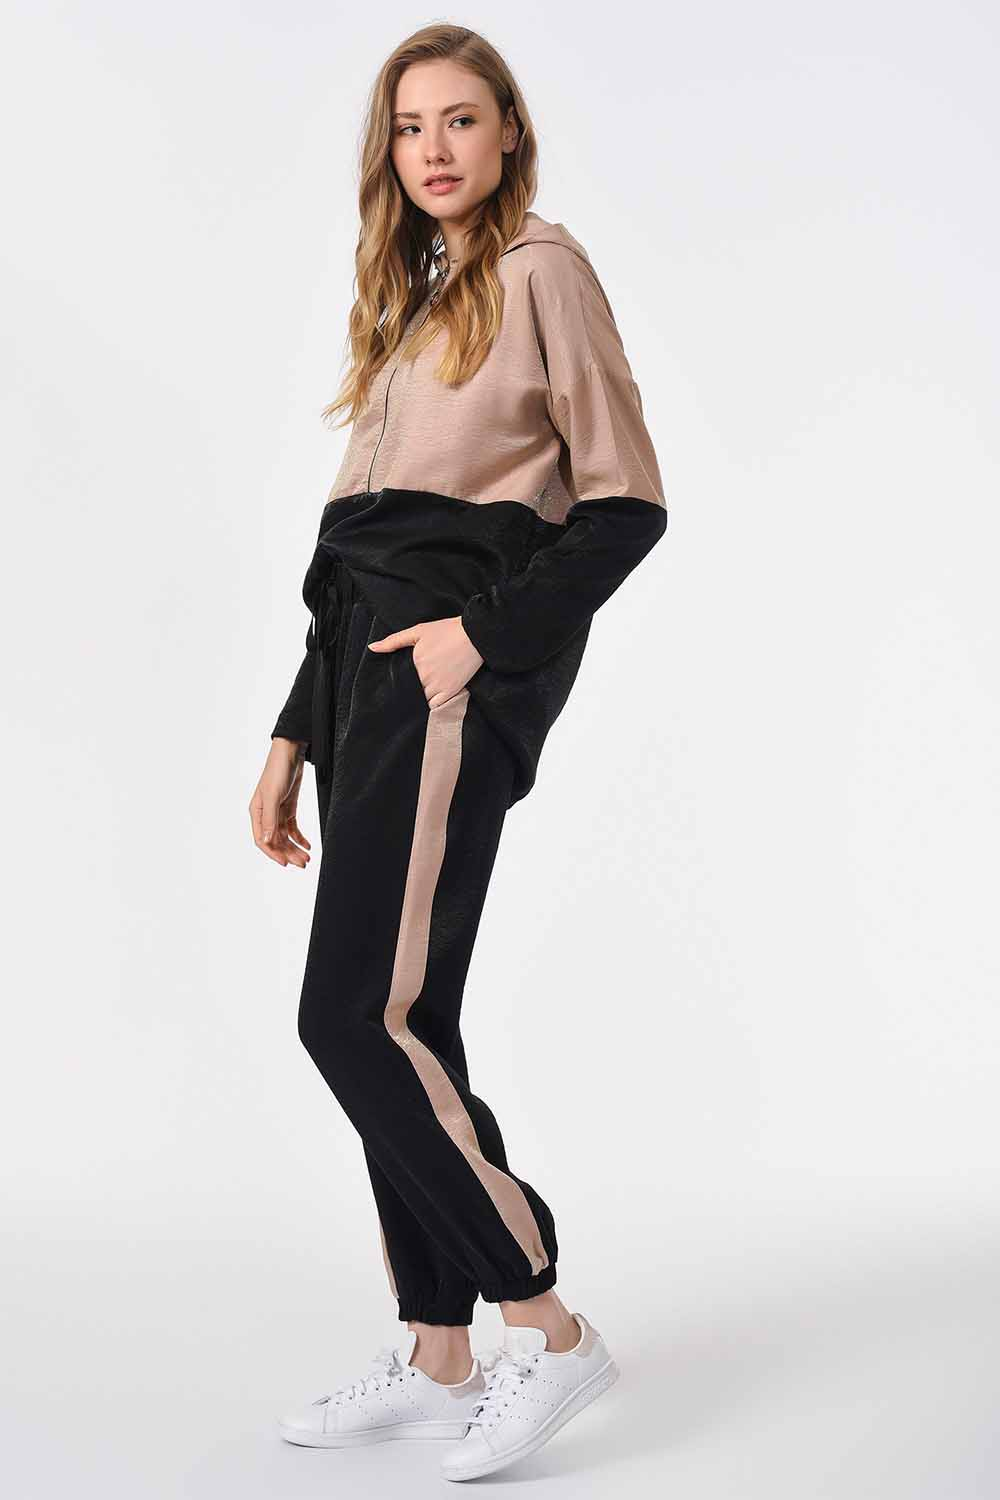 MIZALLE Side Stripes Two Colored Trousers (Black/Beige) (1)